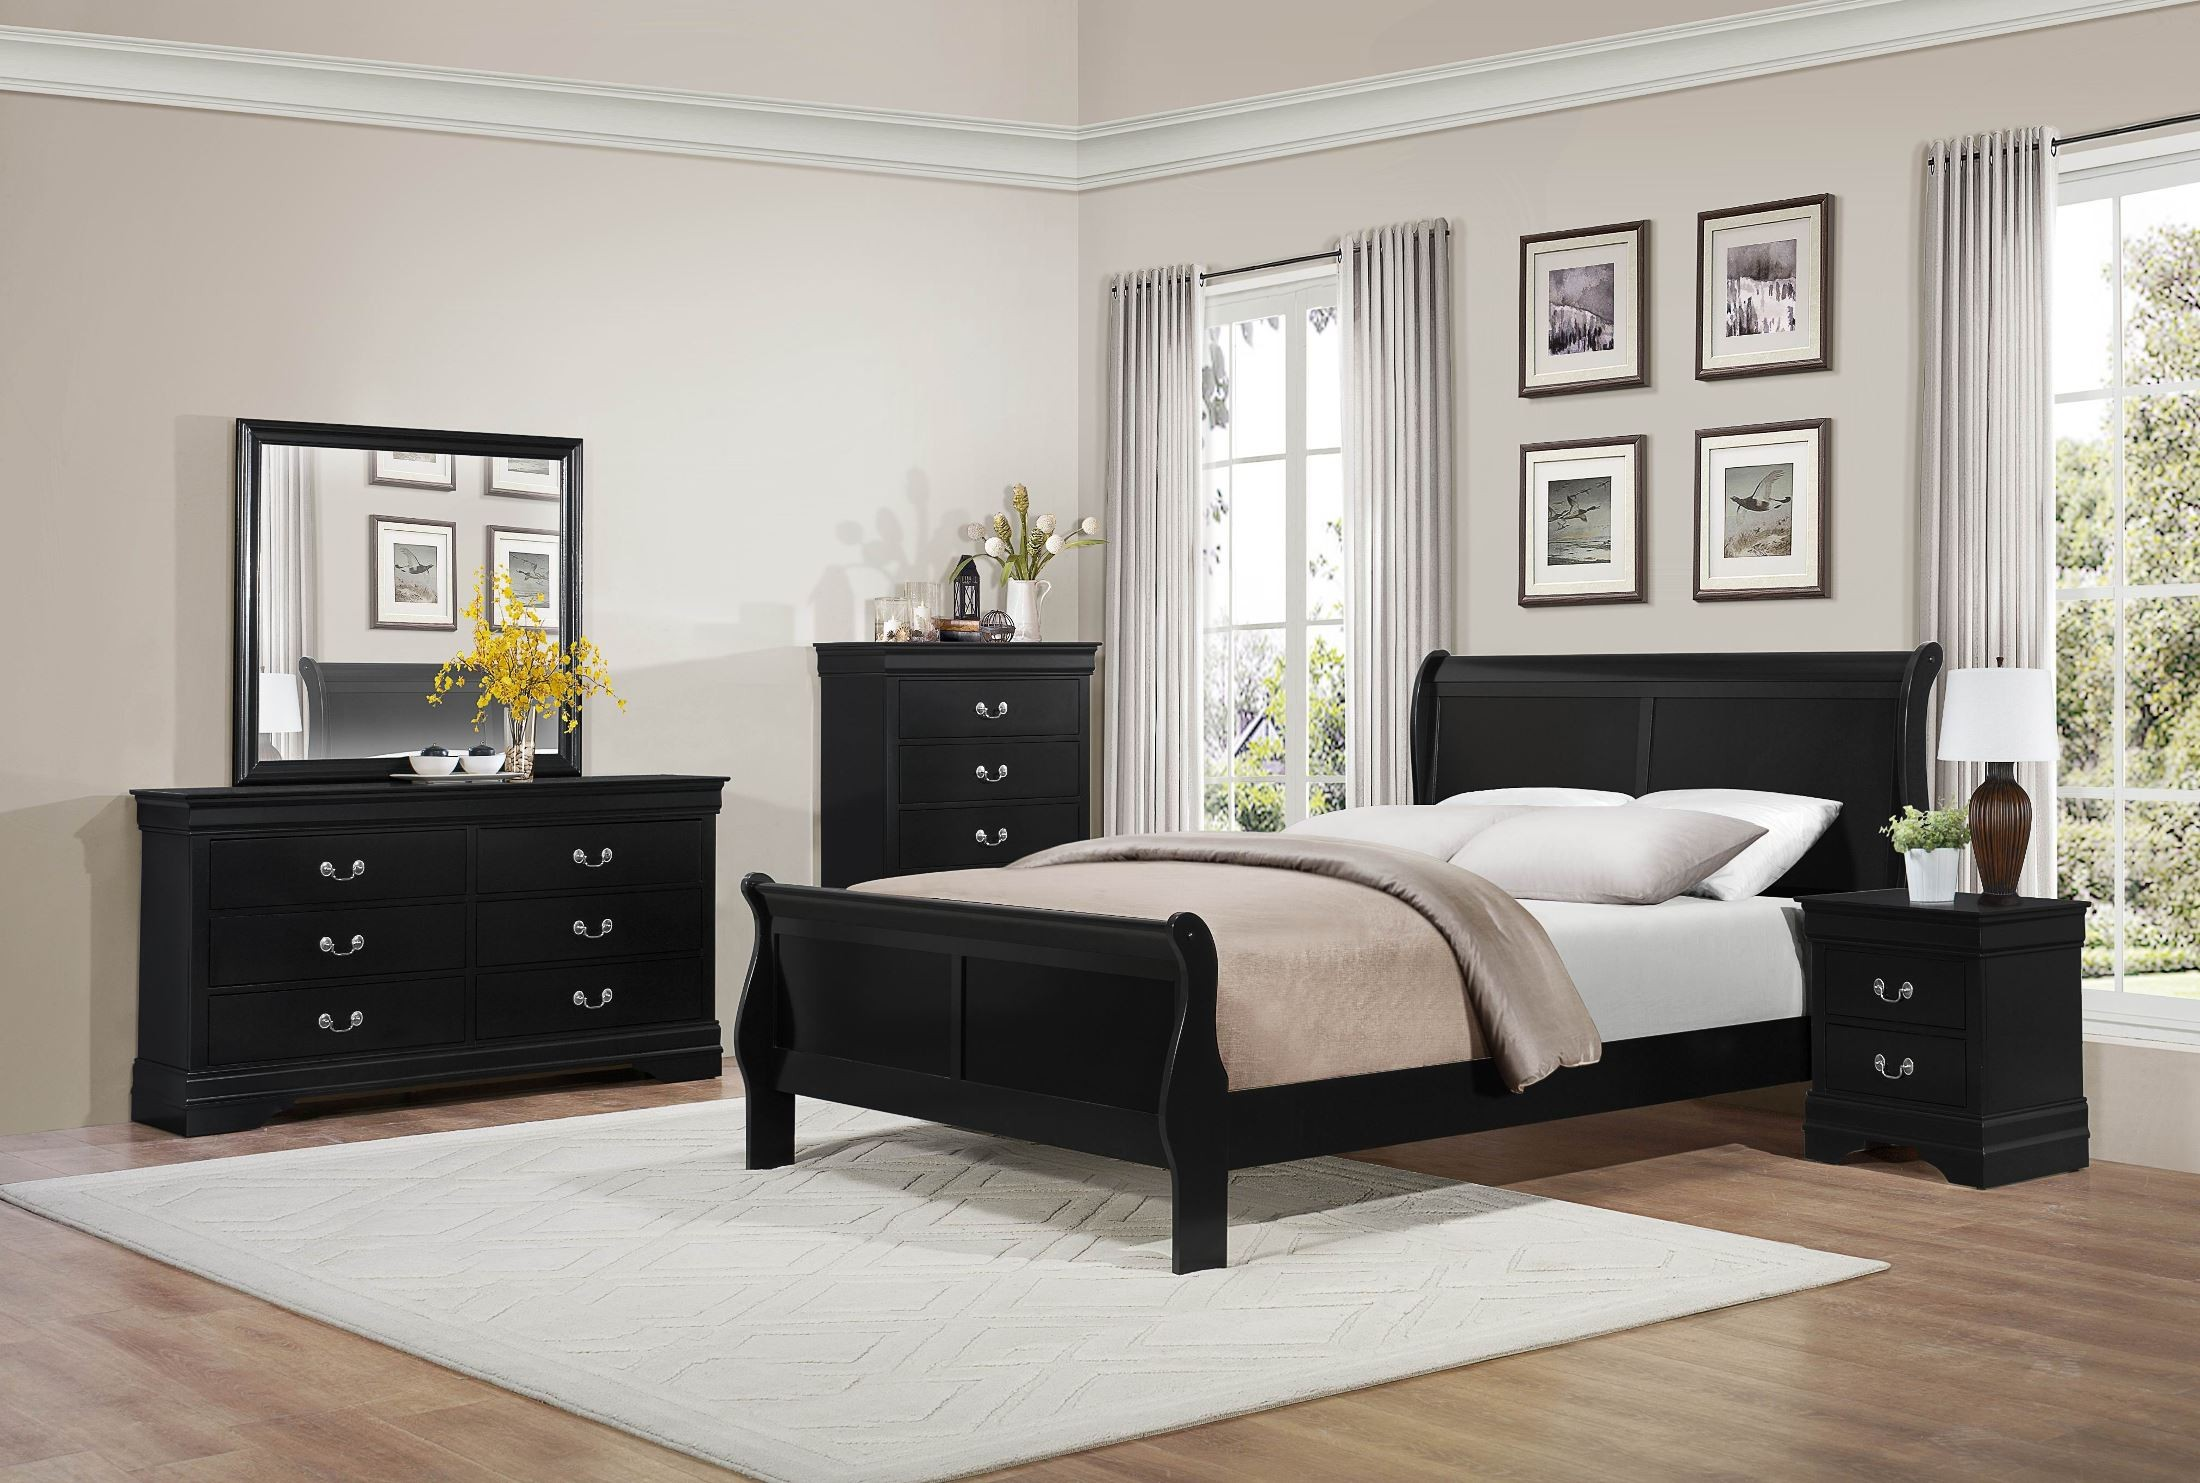 Mayville burnished black sleigh bedroom set from - Black bedroom furniture sets full ...